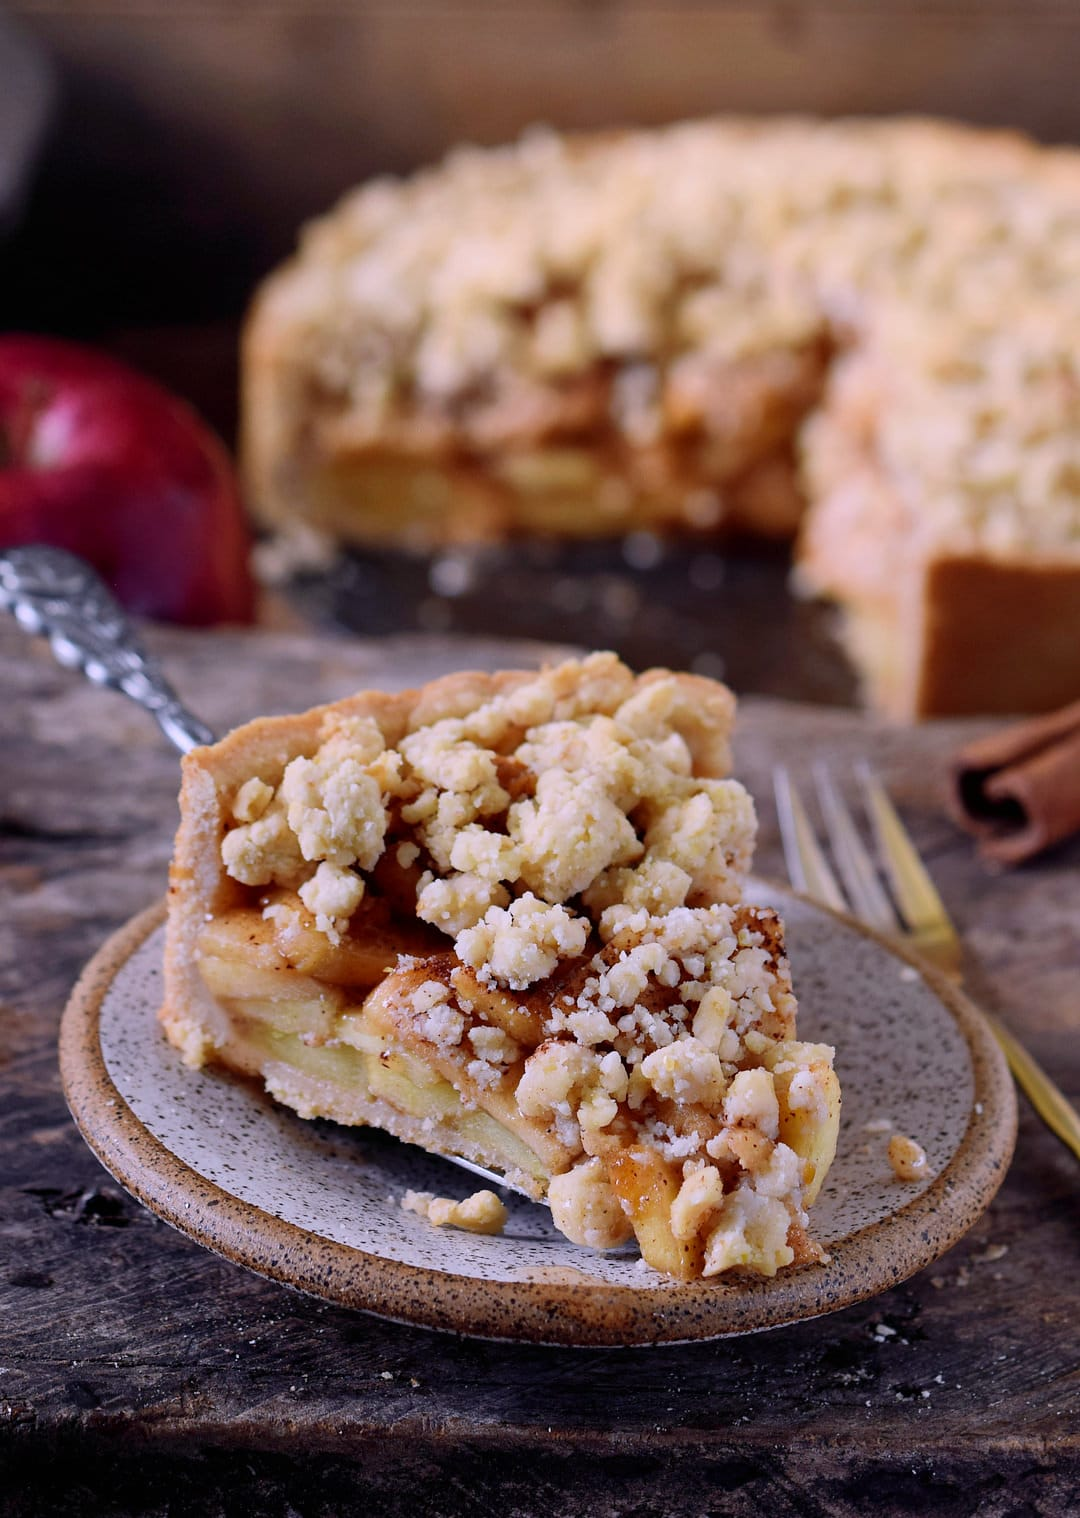 A big piece of vegan apple pie with gluten-free streusel